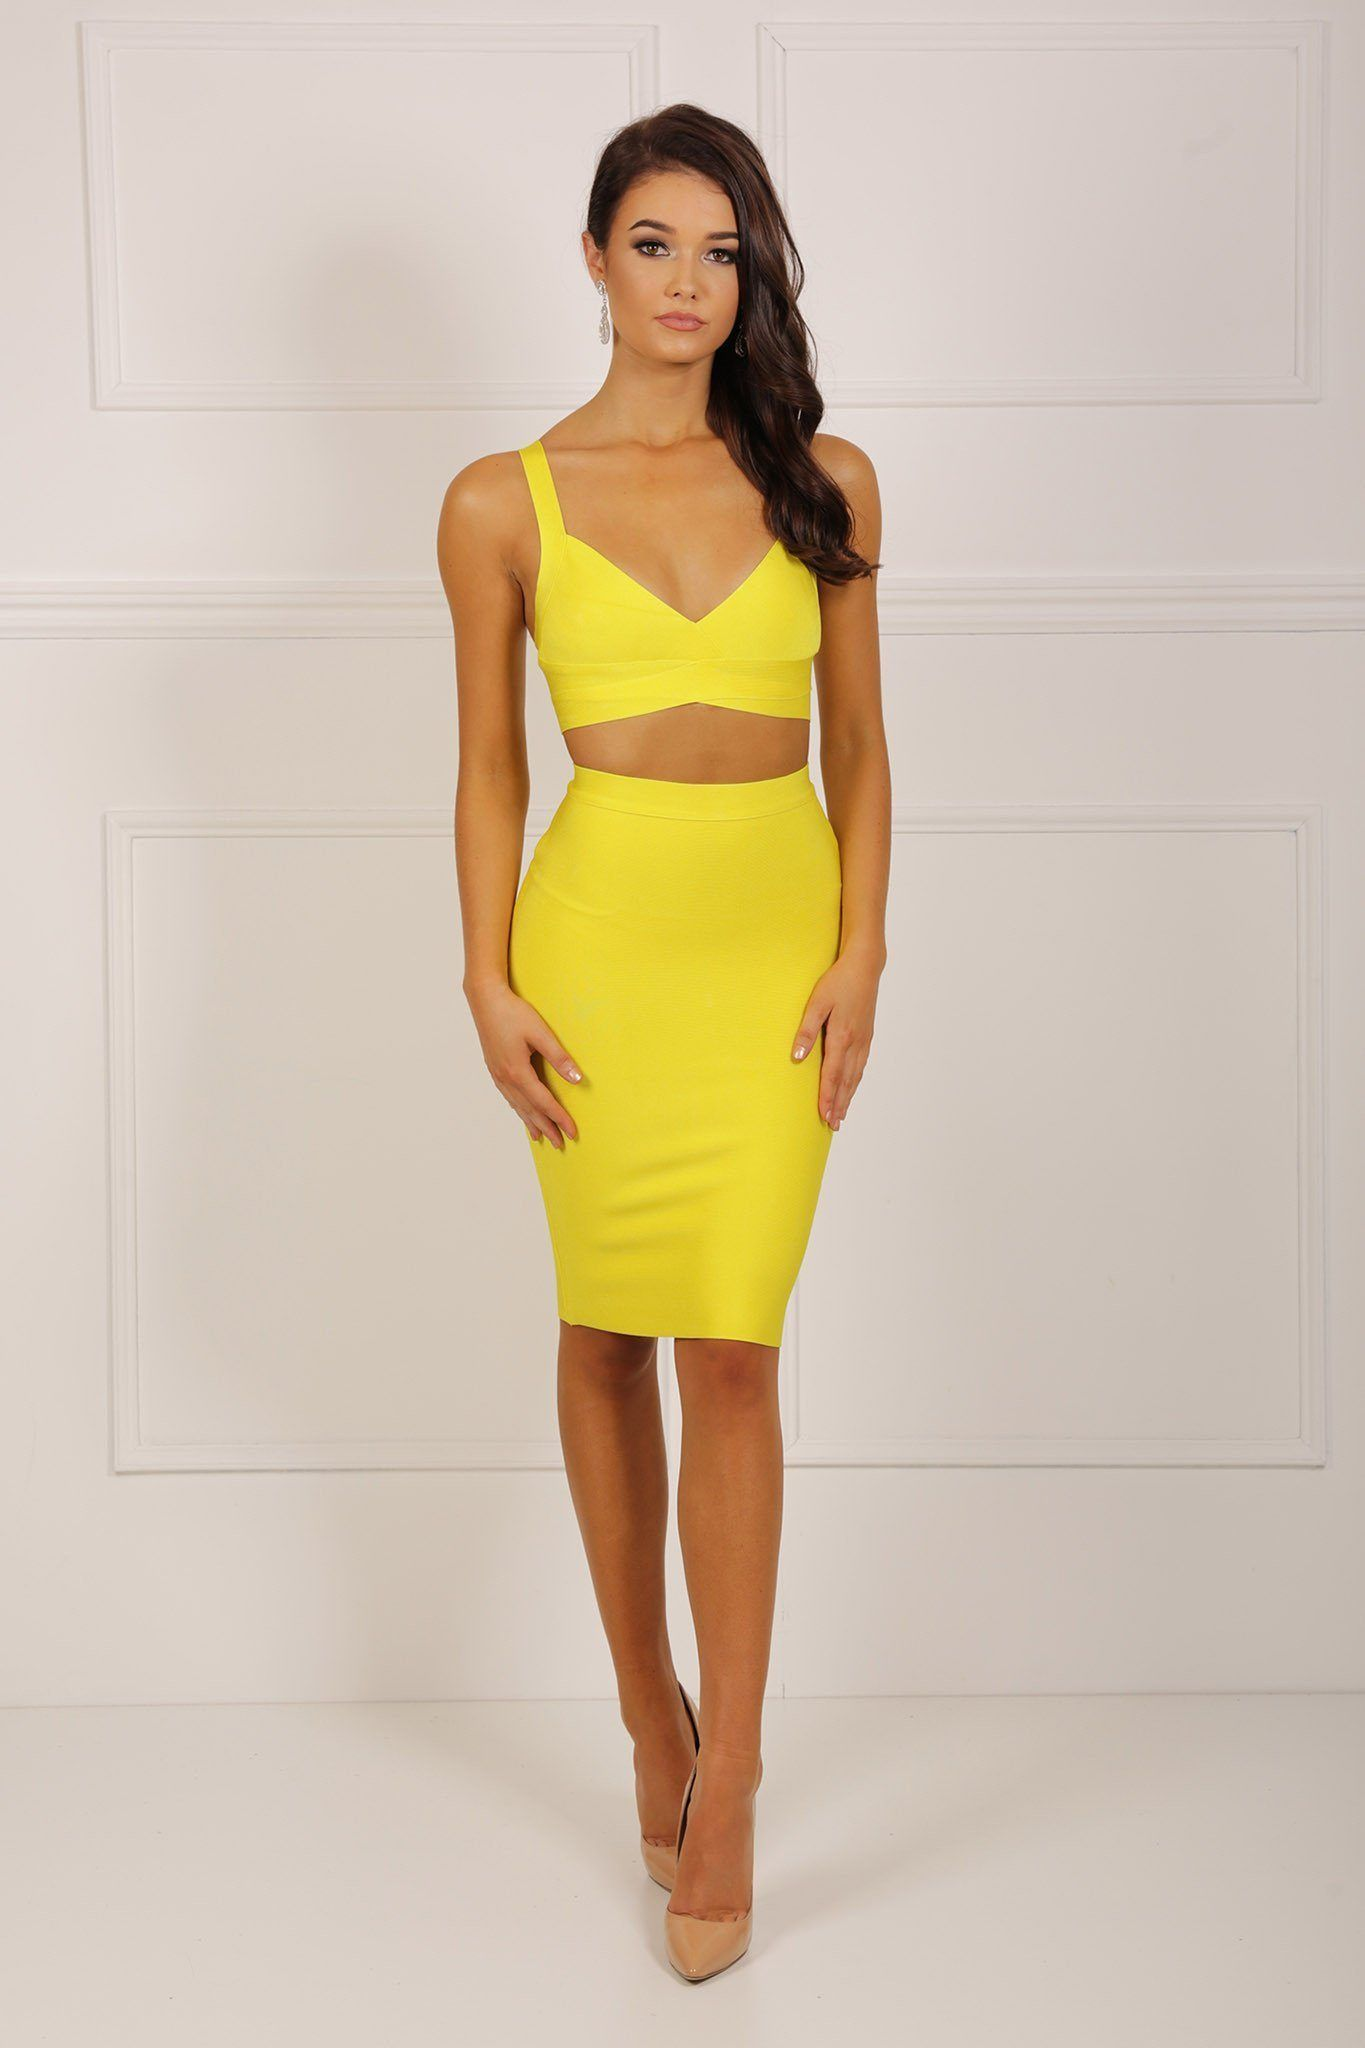 be1c81782 Two-piece bandage dress set including bralette style crop top and midi  pencil skirt in yellow color